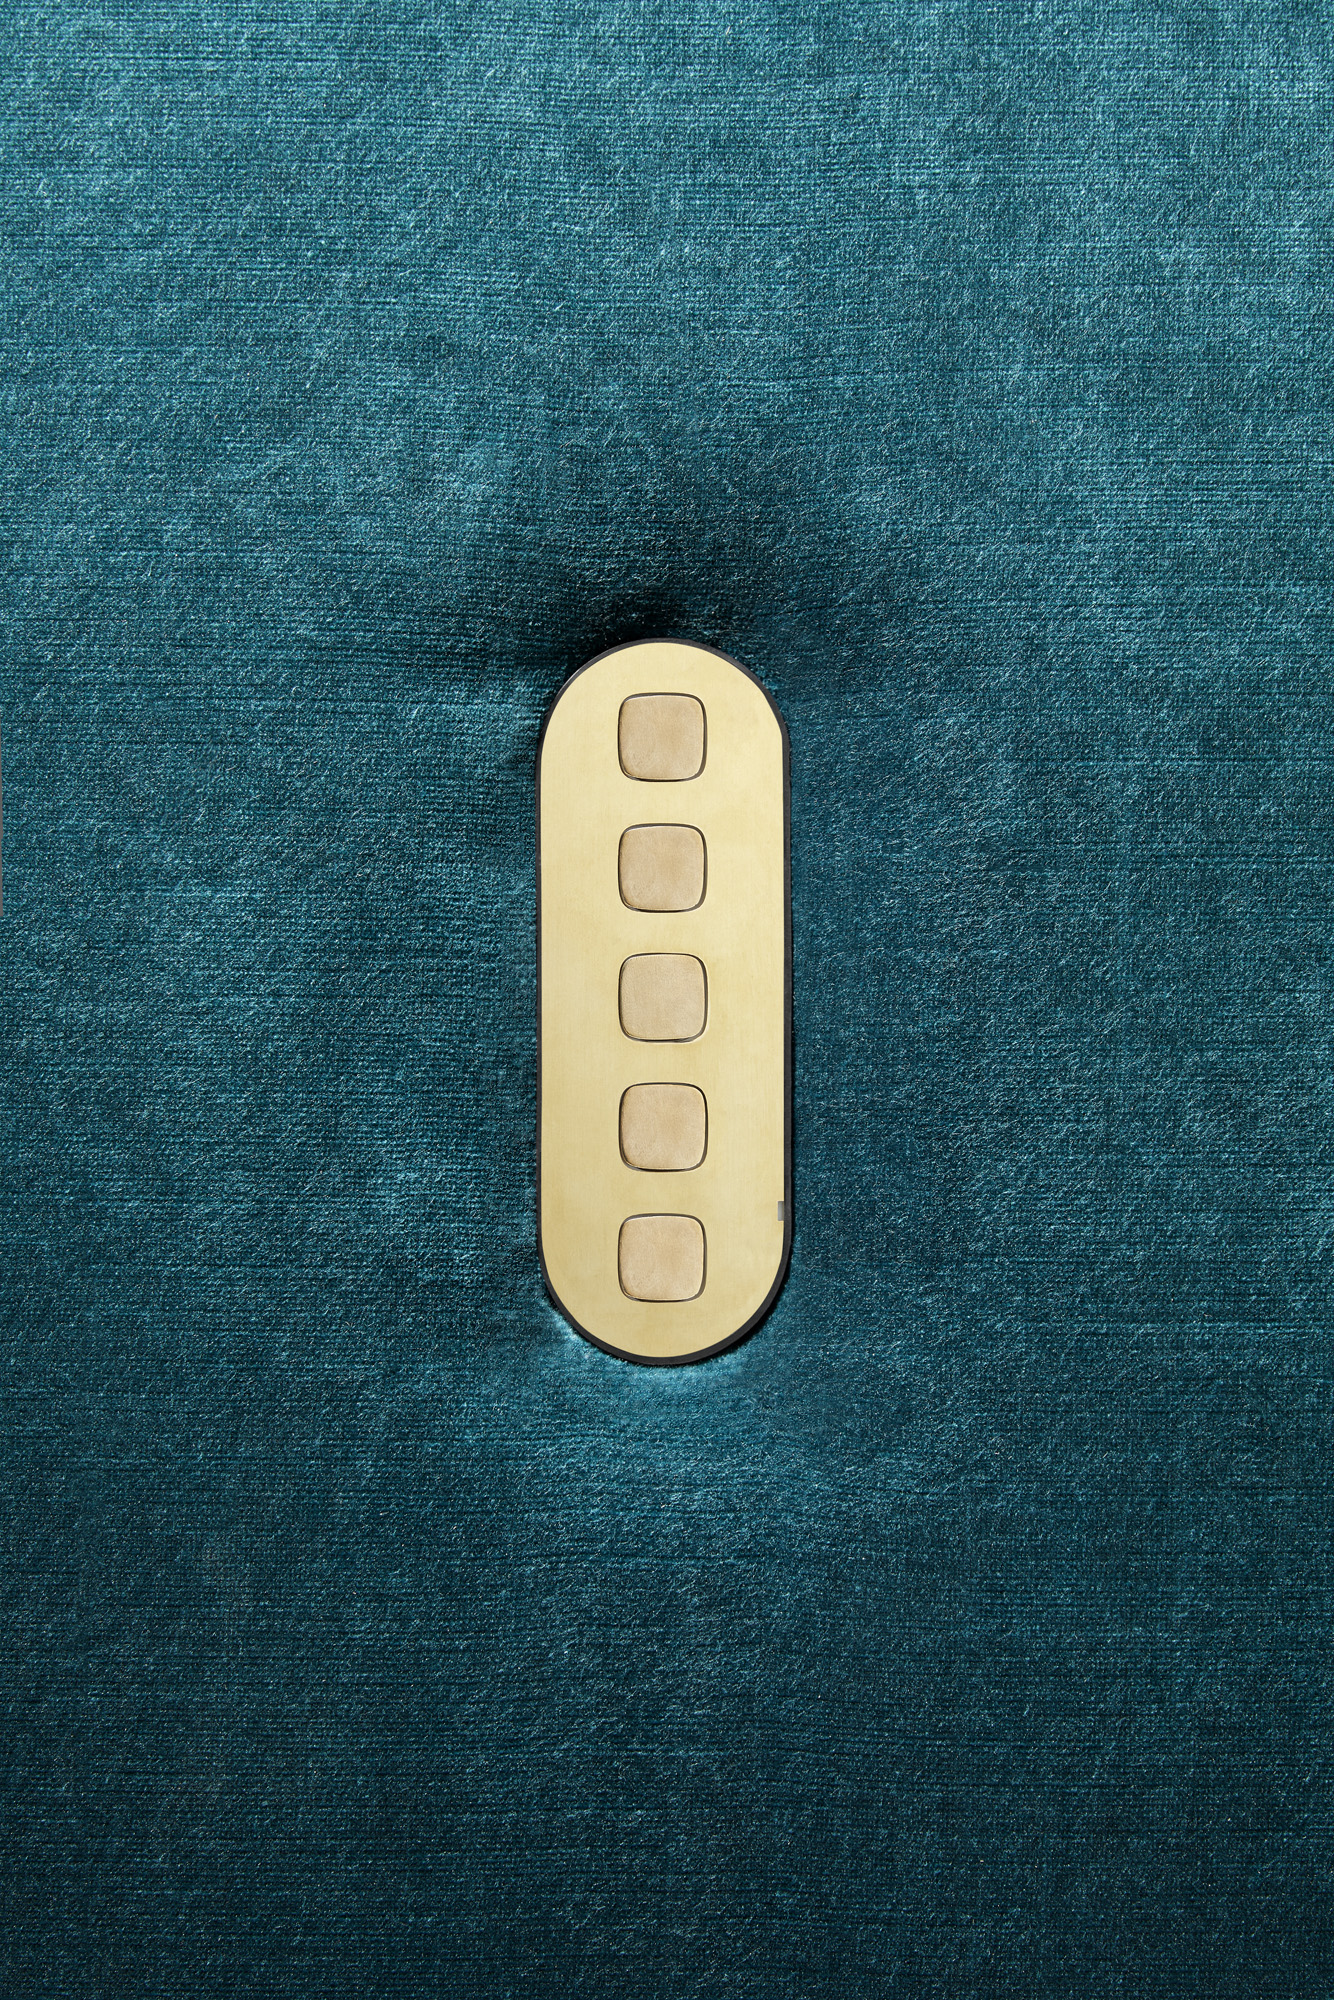 Five_Gang_Switch_Brass_Fabric.jpg